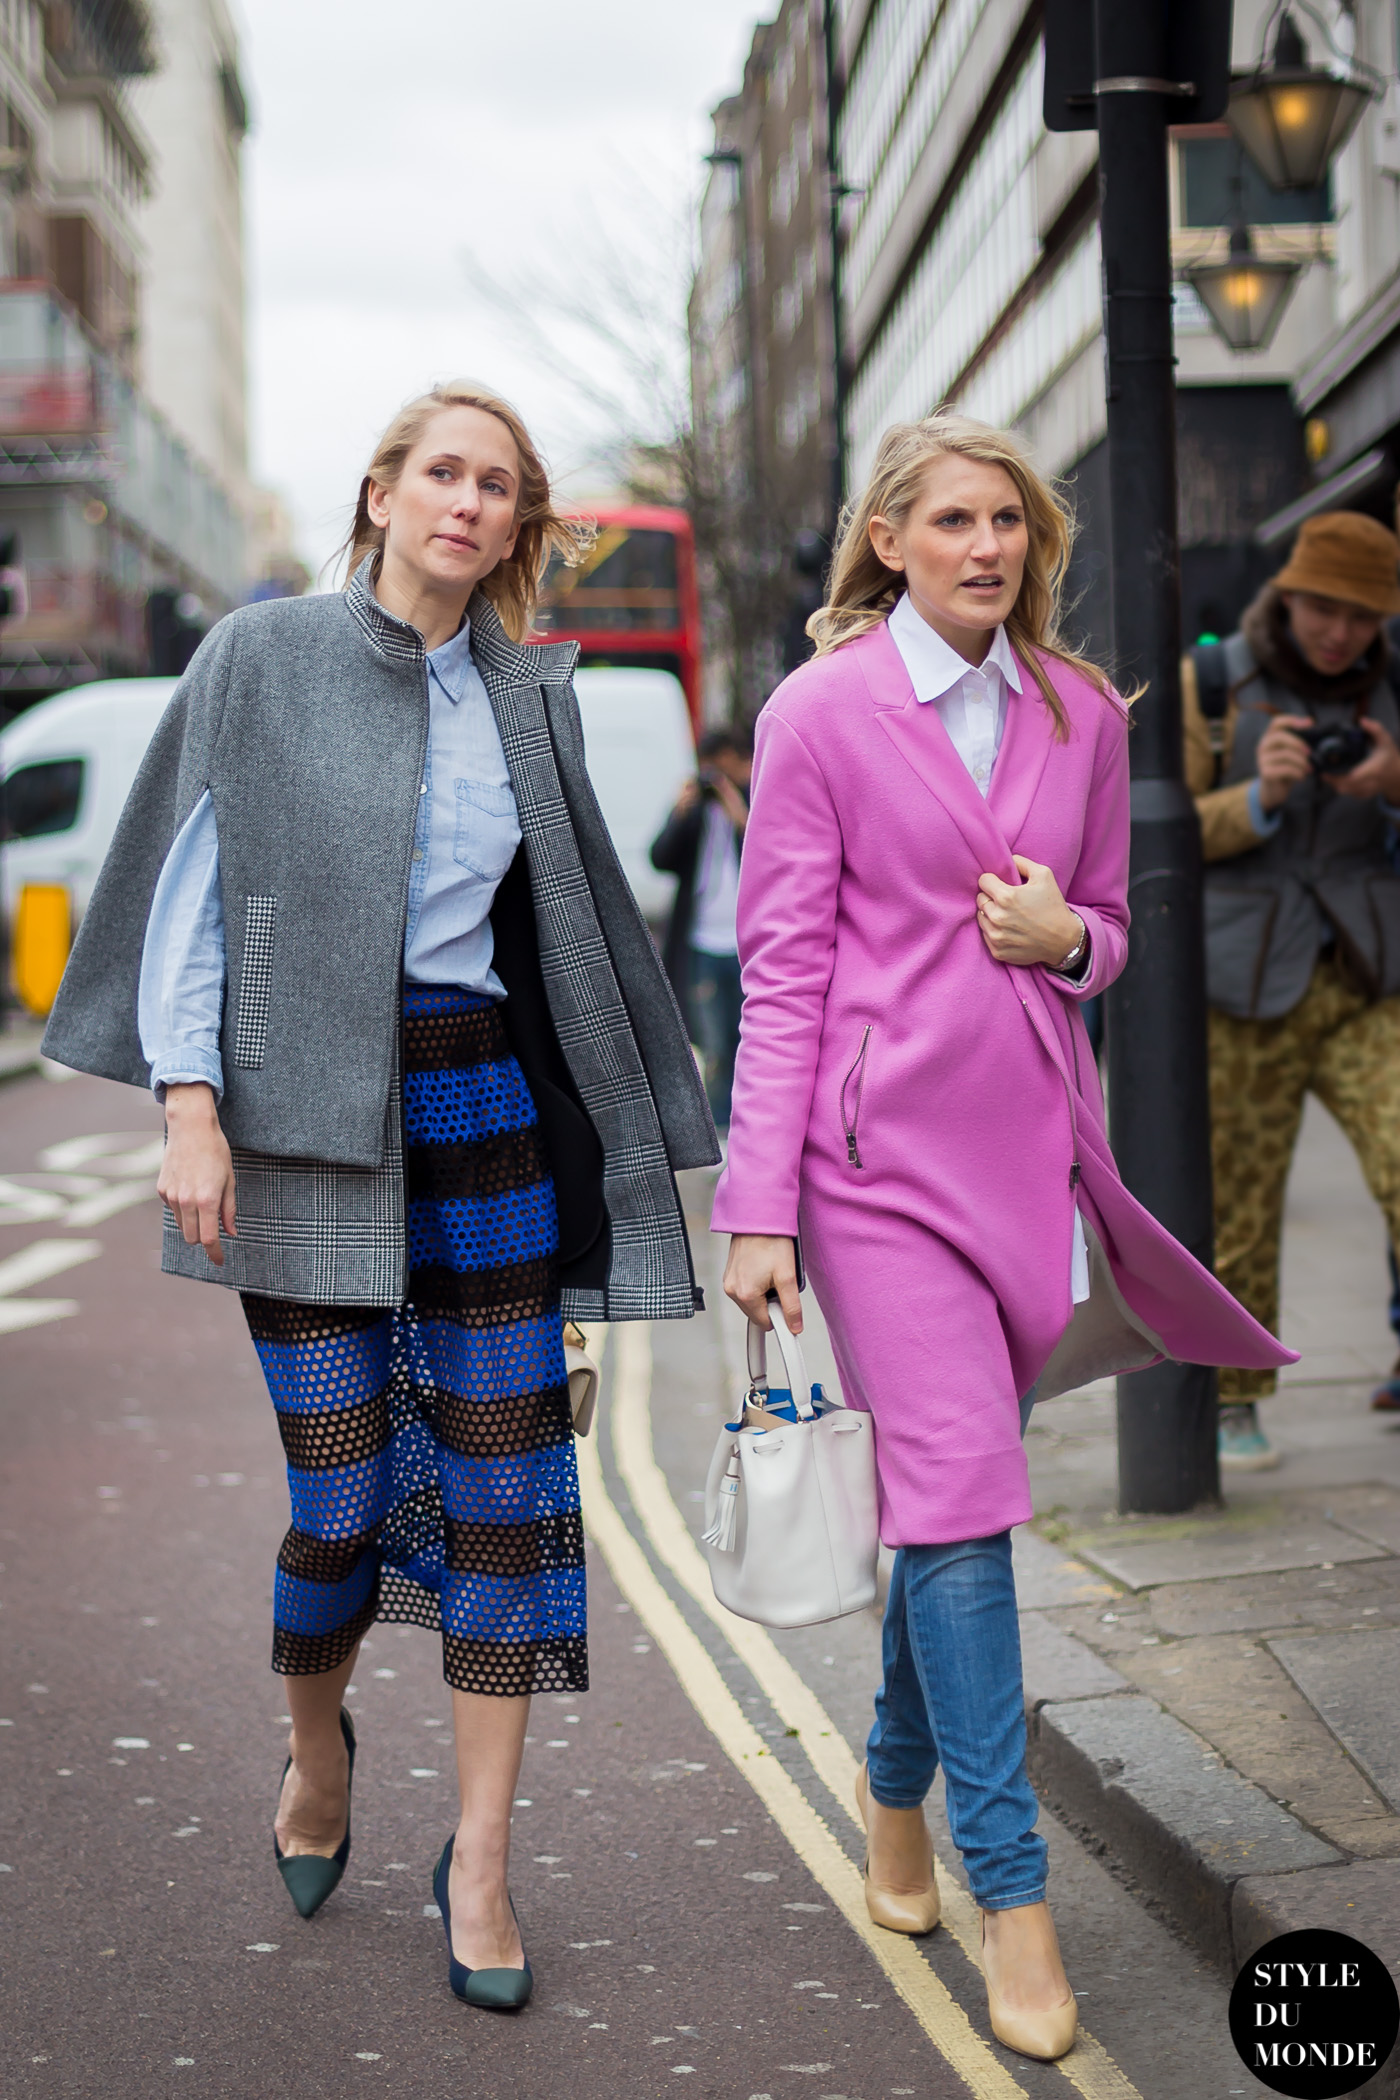 Indre Rockefeller Street Style Street Fashion Streetsnaps by STYLEDUMONDE Street Style Fashion Blog